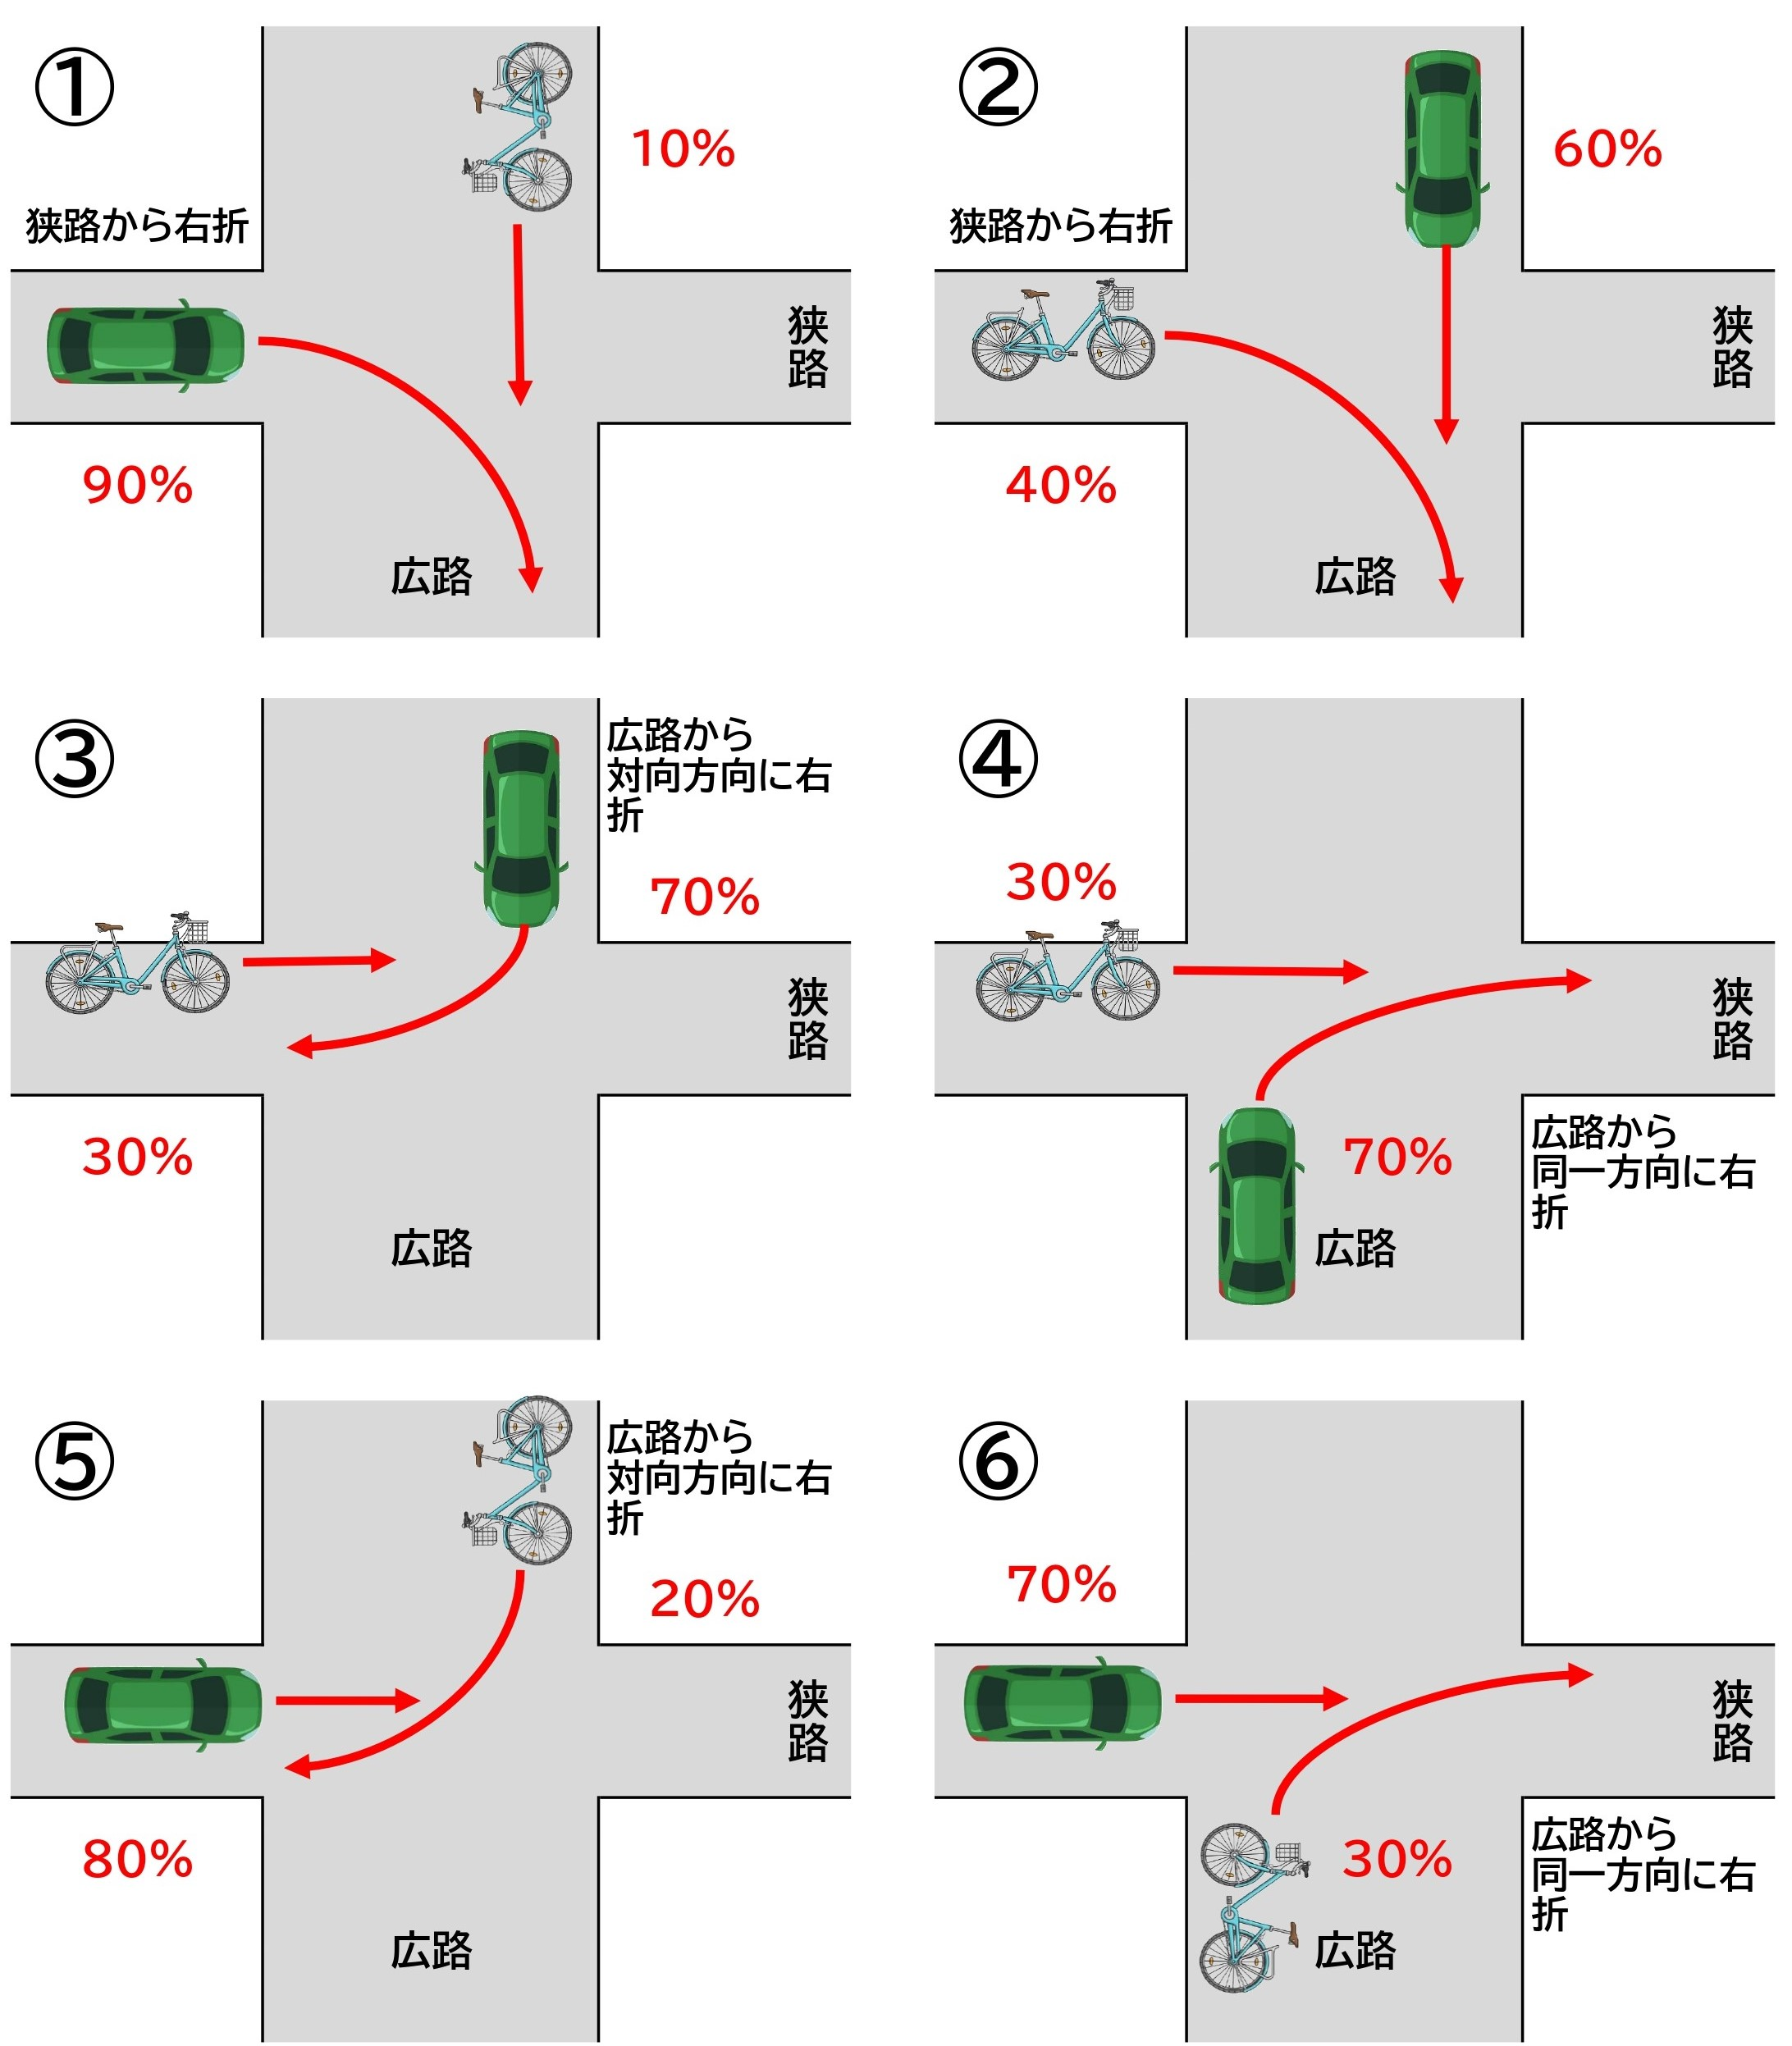 [Figure] Bicycle and car / intersection / right turn and straight ahead / intersection direction / no traffic light / one side is clearly wide